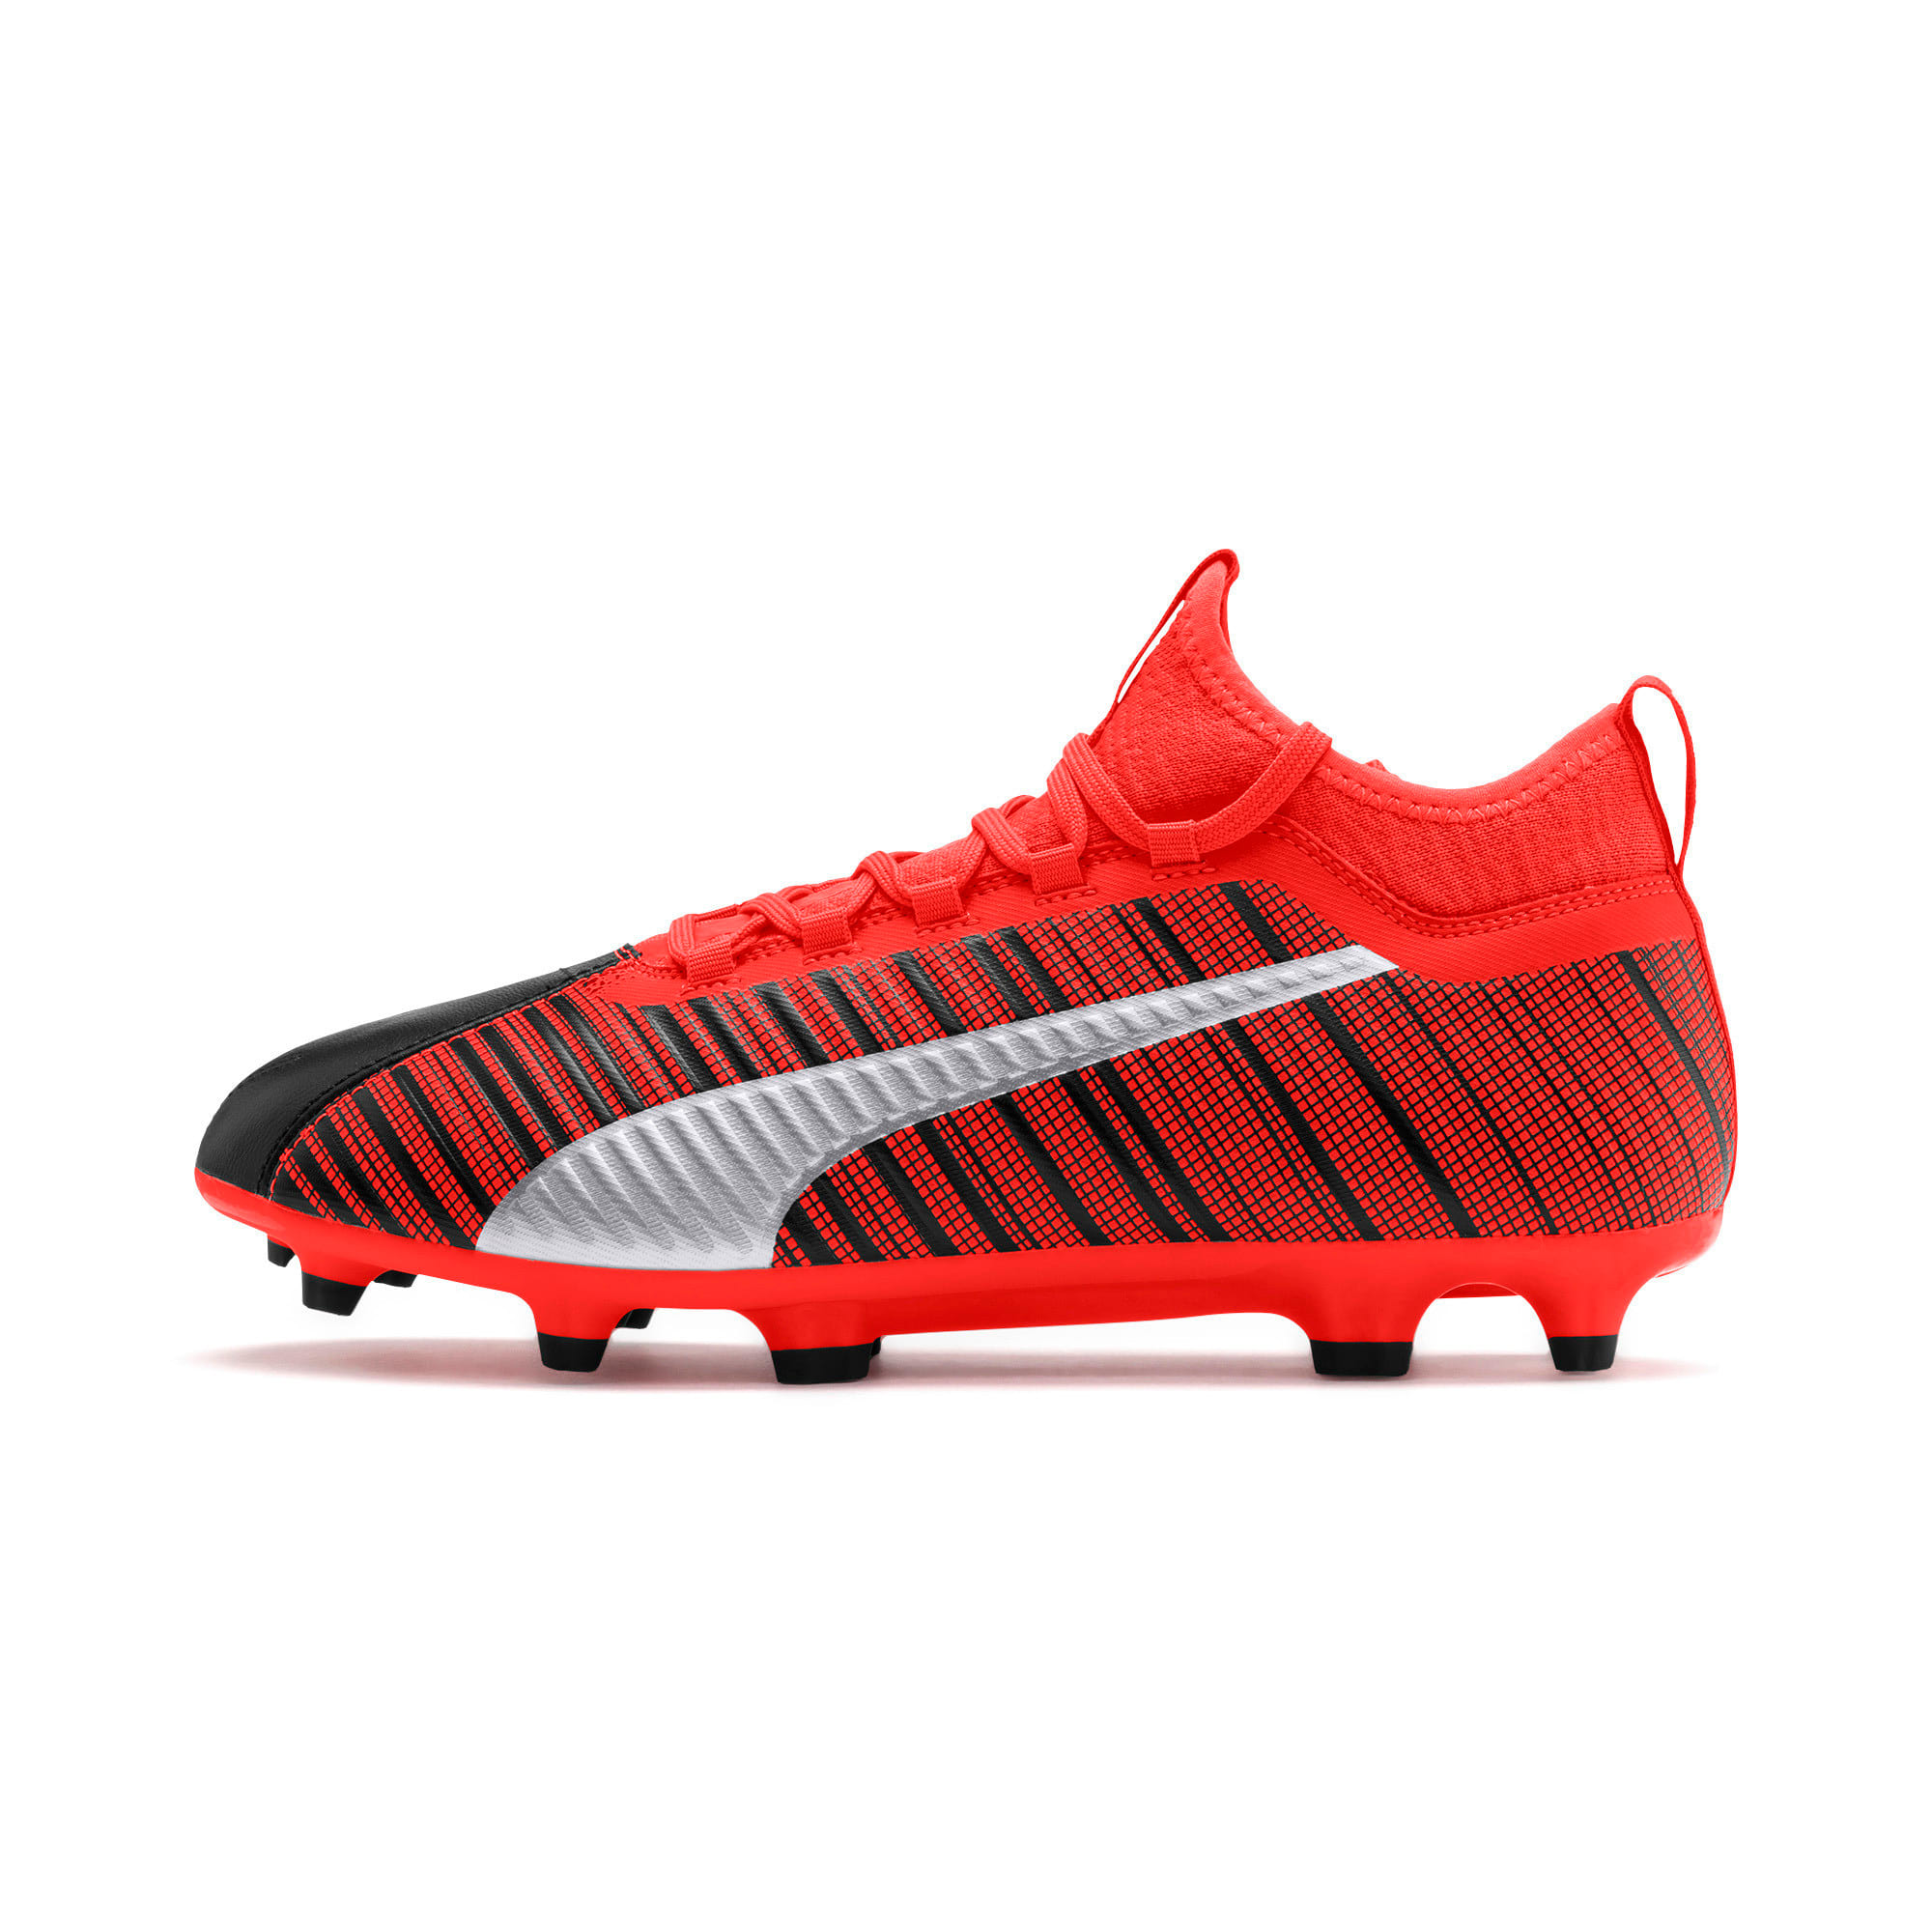 Thumbnail 1 van PUMA ONE 5.3 FG/AG voetbalschoenen voor mannen, Black-Nrgy Red-Aged Silver, medium